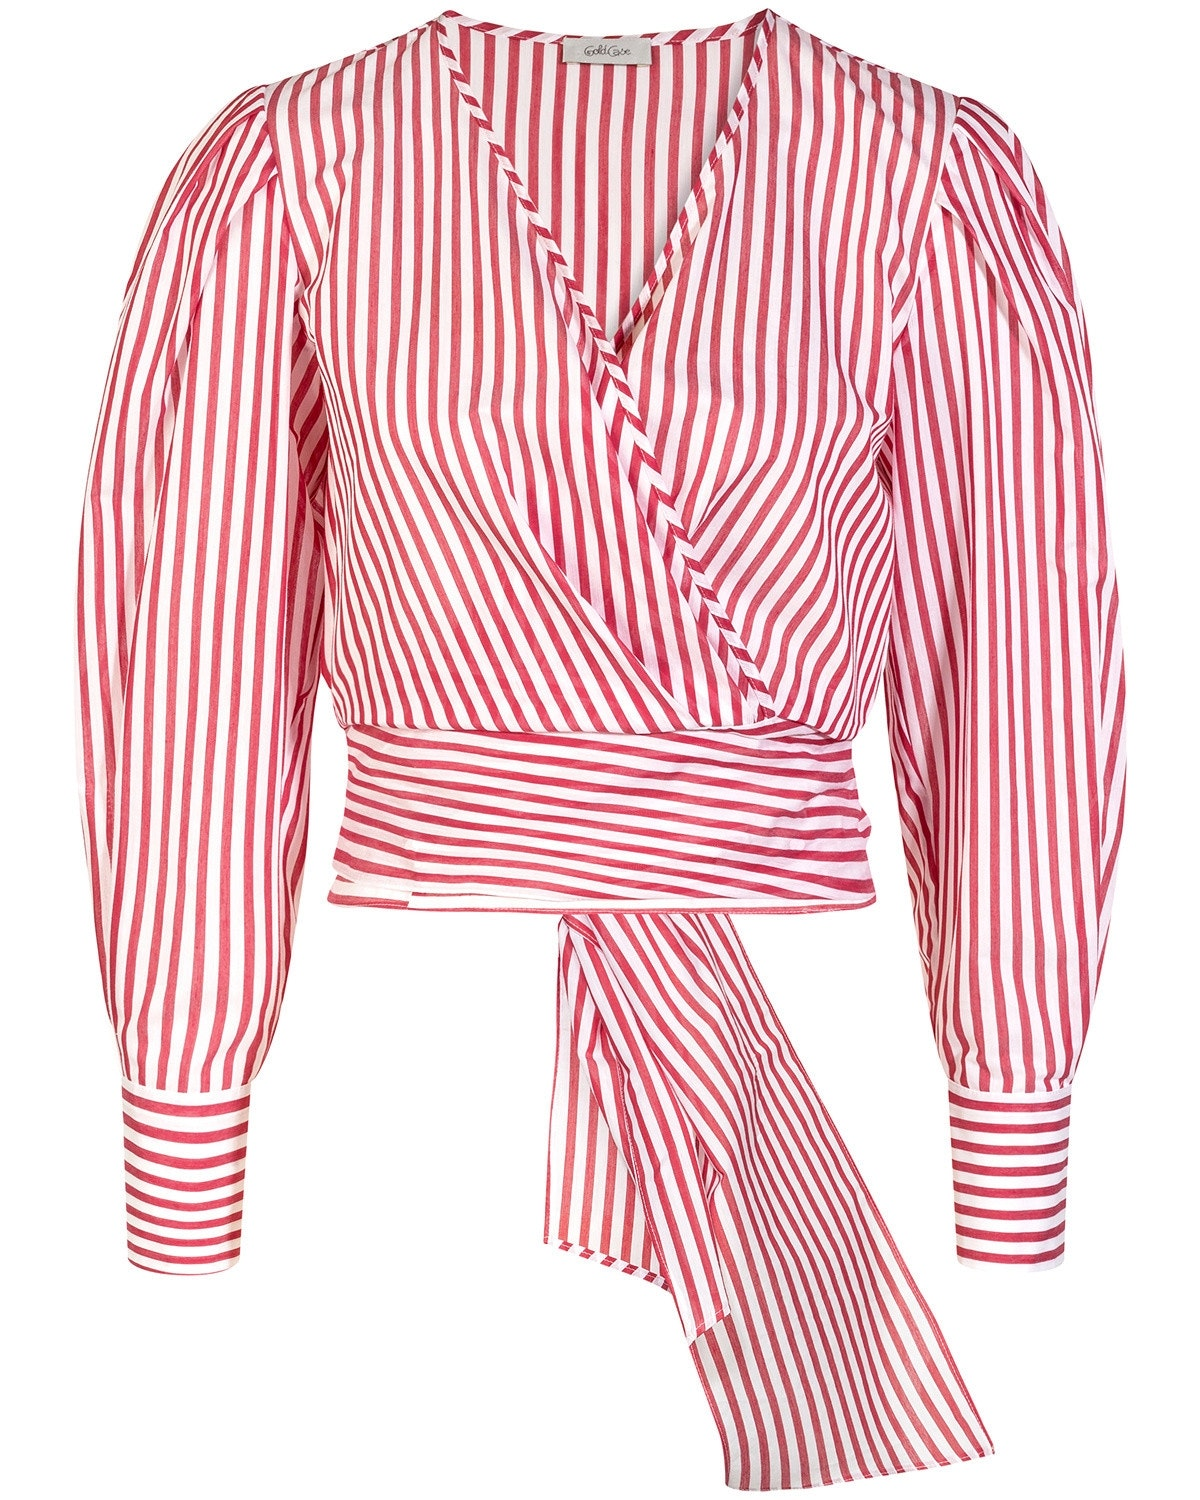 Gold Case, red Bluse, Stripes, Lodenfrey, Munich